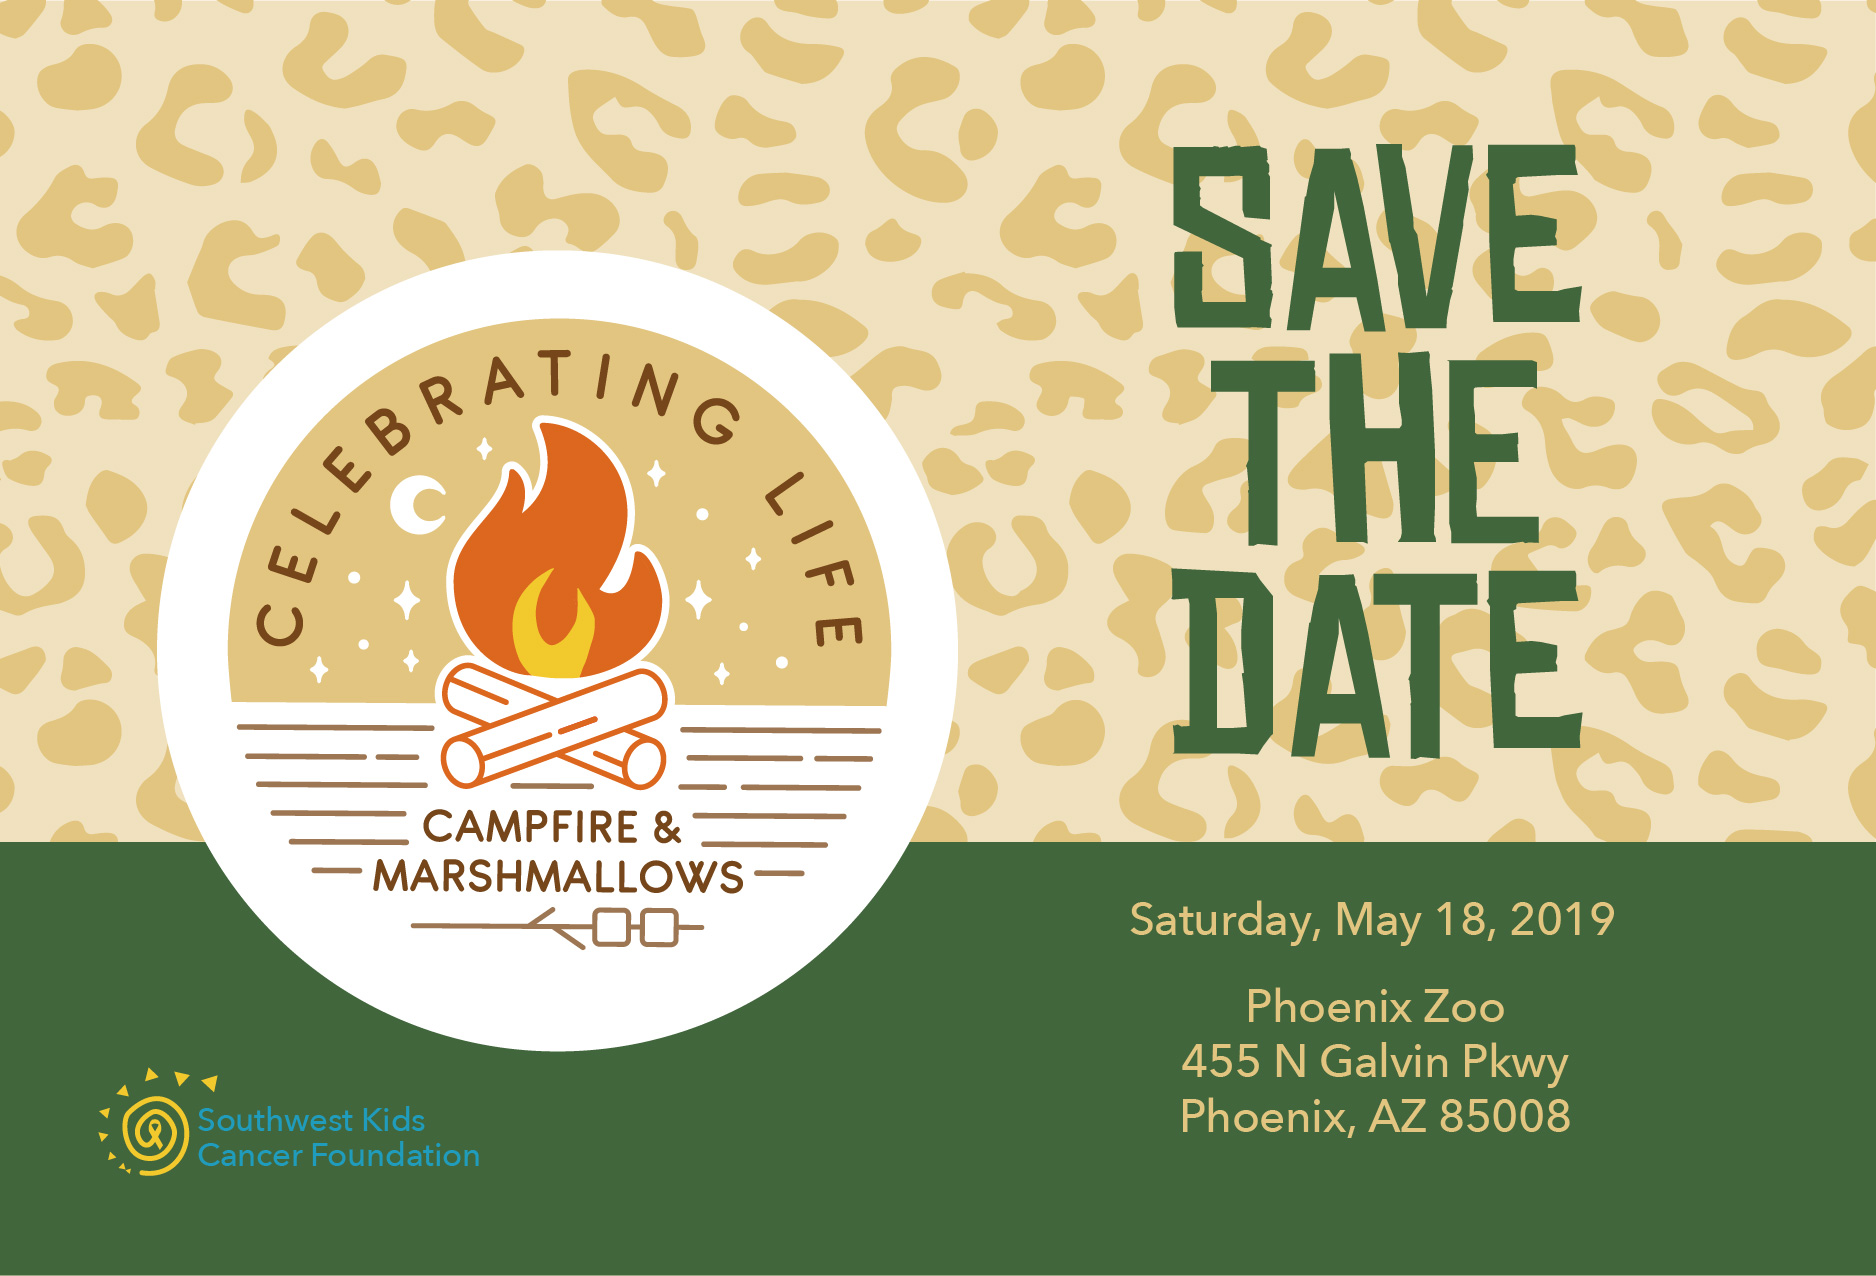 SaveTheDate-CampfireMarshmallows-01[14].jpg